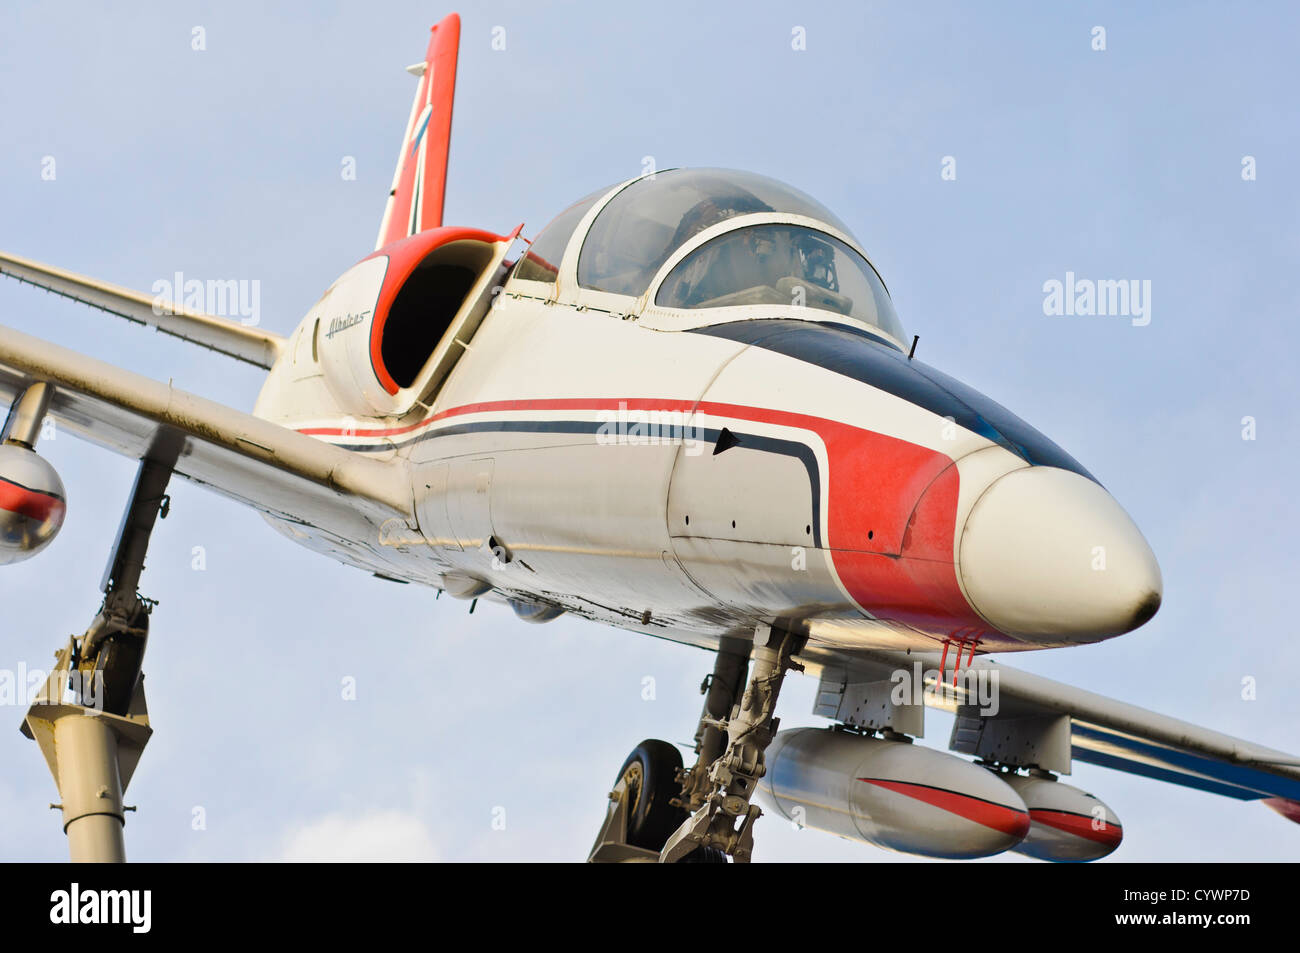 AERO L-39 Albatros jet fighter trainer aircraft - Car & Technology Museum Sinsheim, South Germany - Stock Image